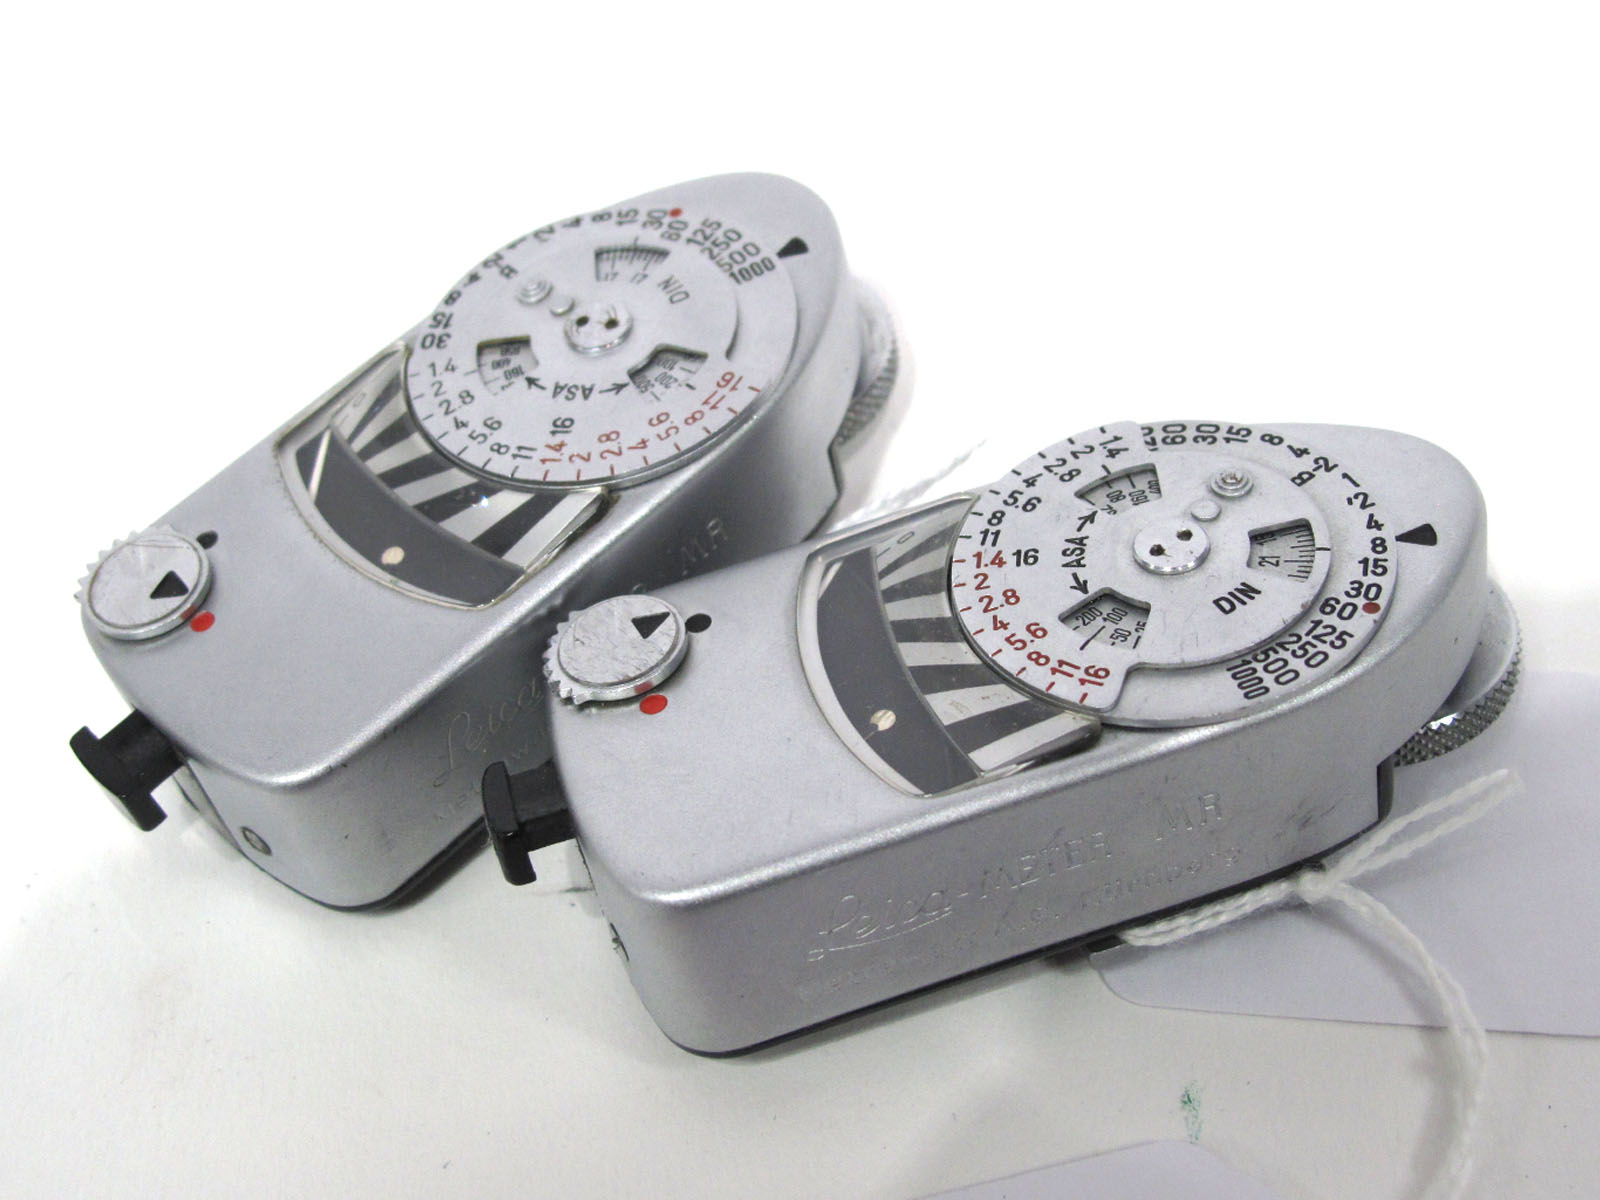 Two Leica Meter MR.